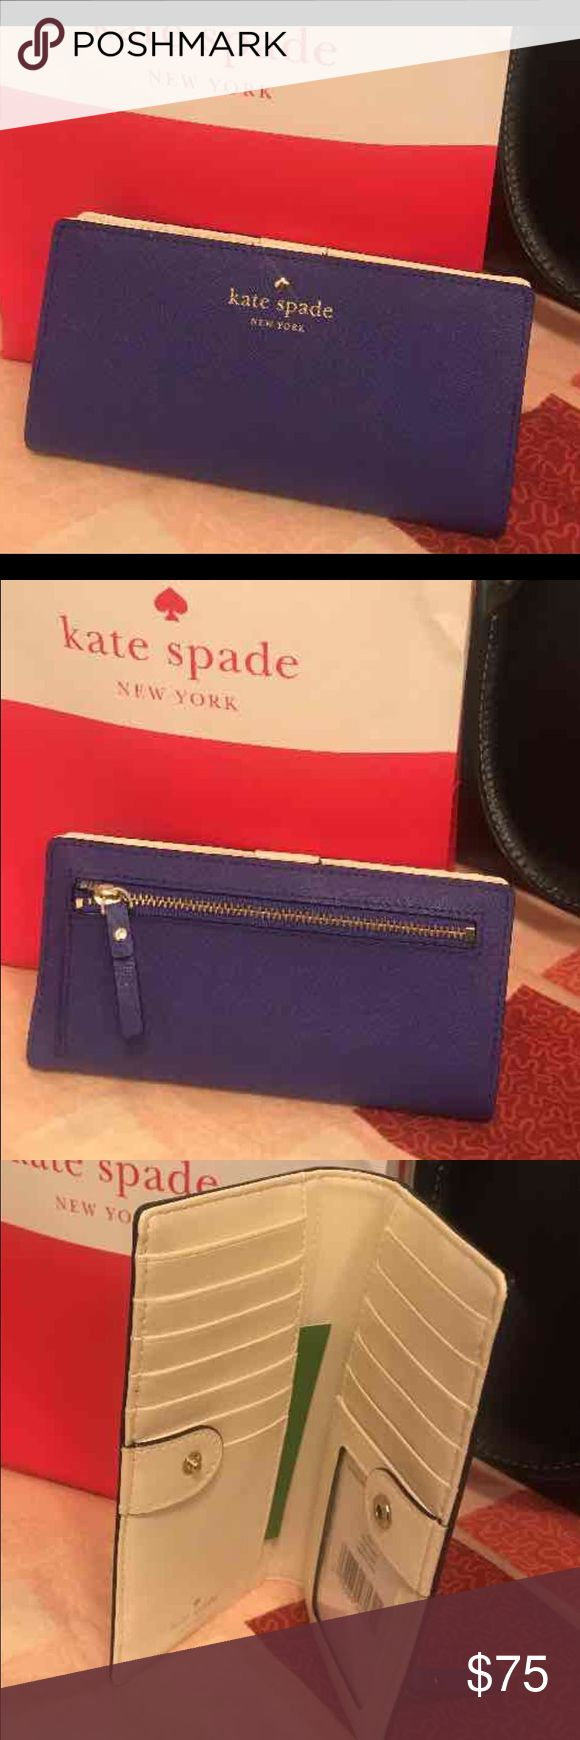 Kate Spade Mikas Pond Stacy wallet NWT  vibrant Baja Blue cross hatched leather with gold tone accents. Matching Charlotte Street Alek crossbody is also available kate spade Bags Wallets